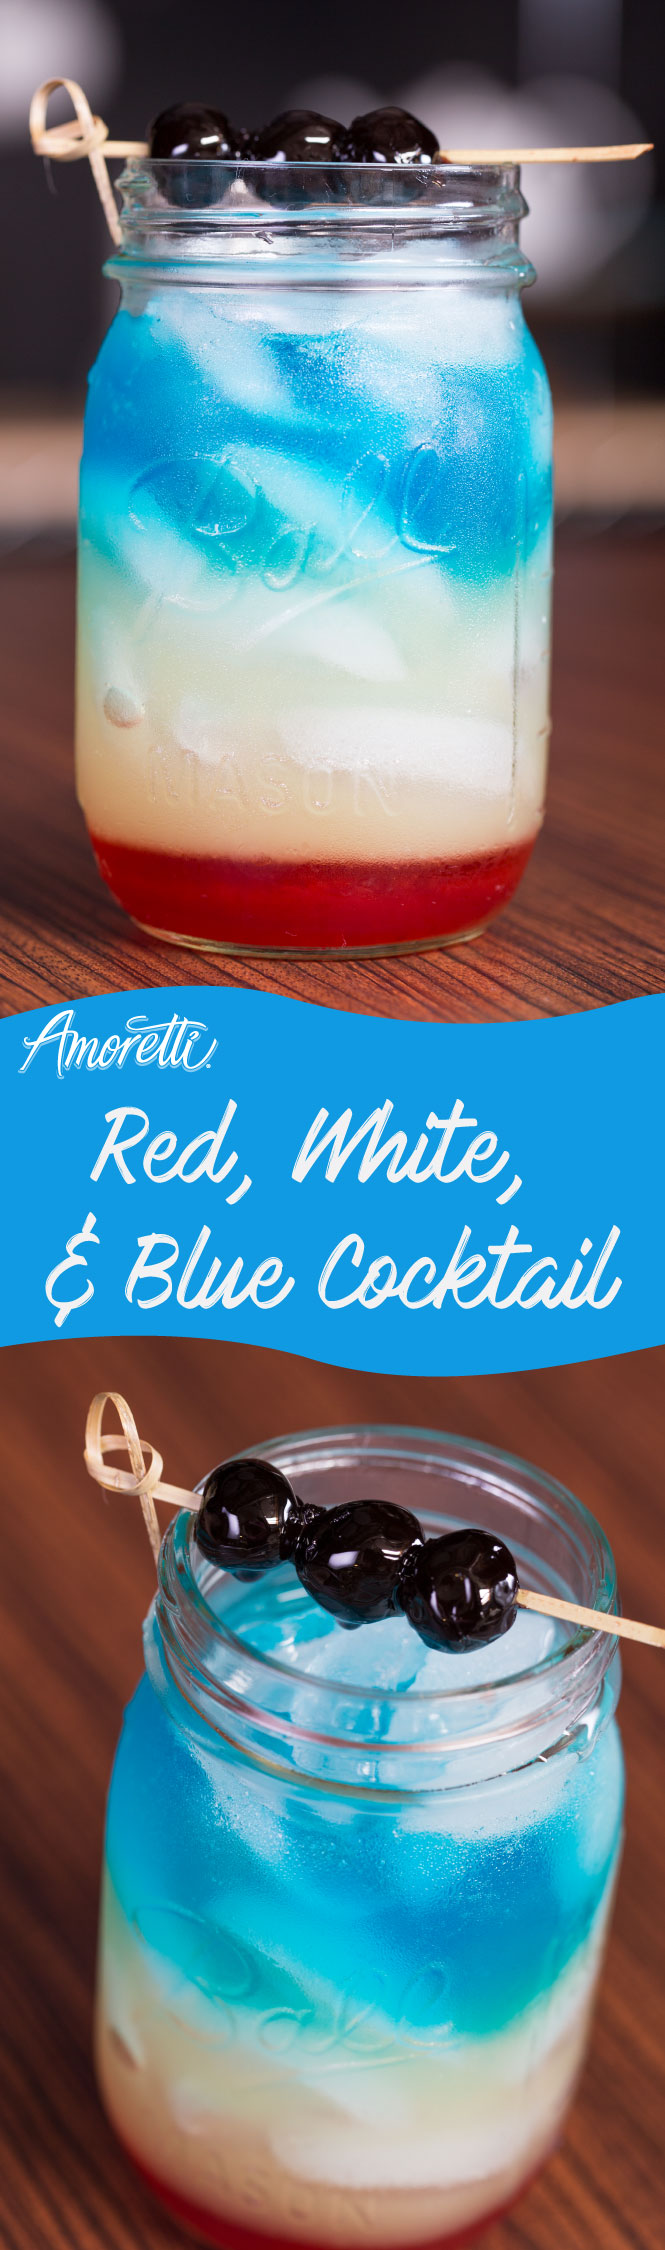 Light it up this 4th of July with our Red, White & Blue Cocktail!